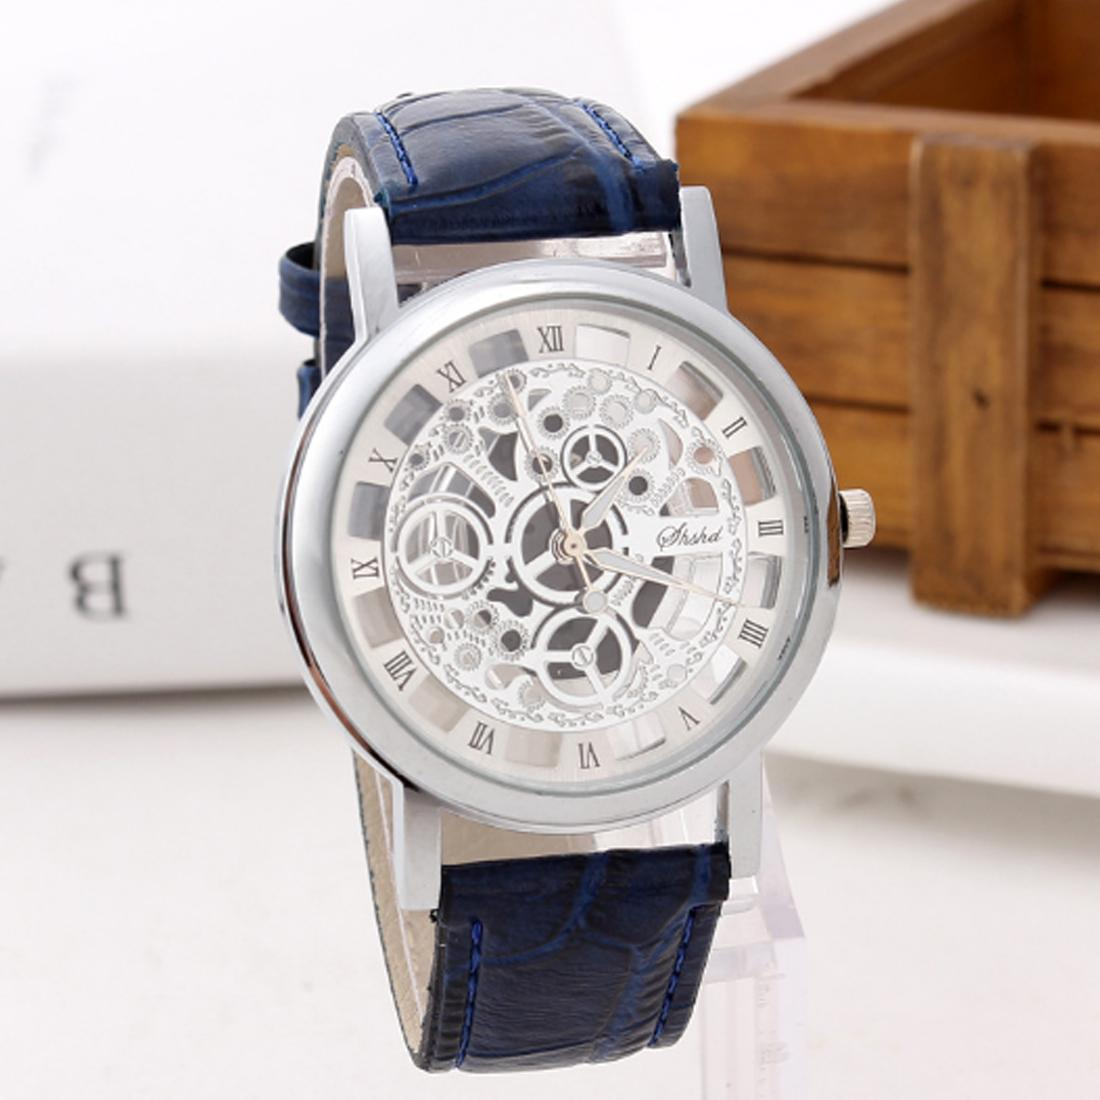 Meboyixi  Fashion Quartz Skeleton Watch Men Style  transparent Hollow Business Dress Wristwatch Leather Watch